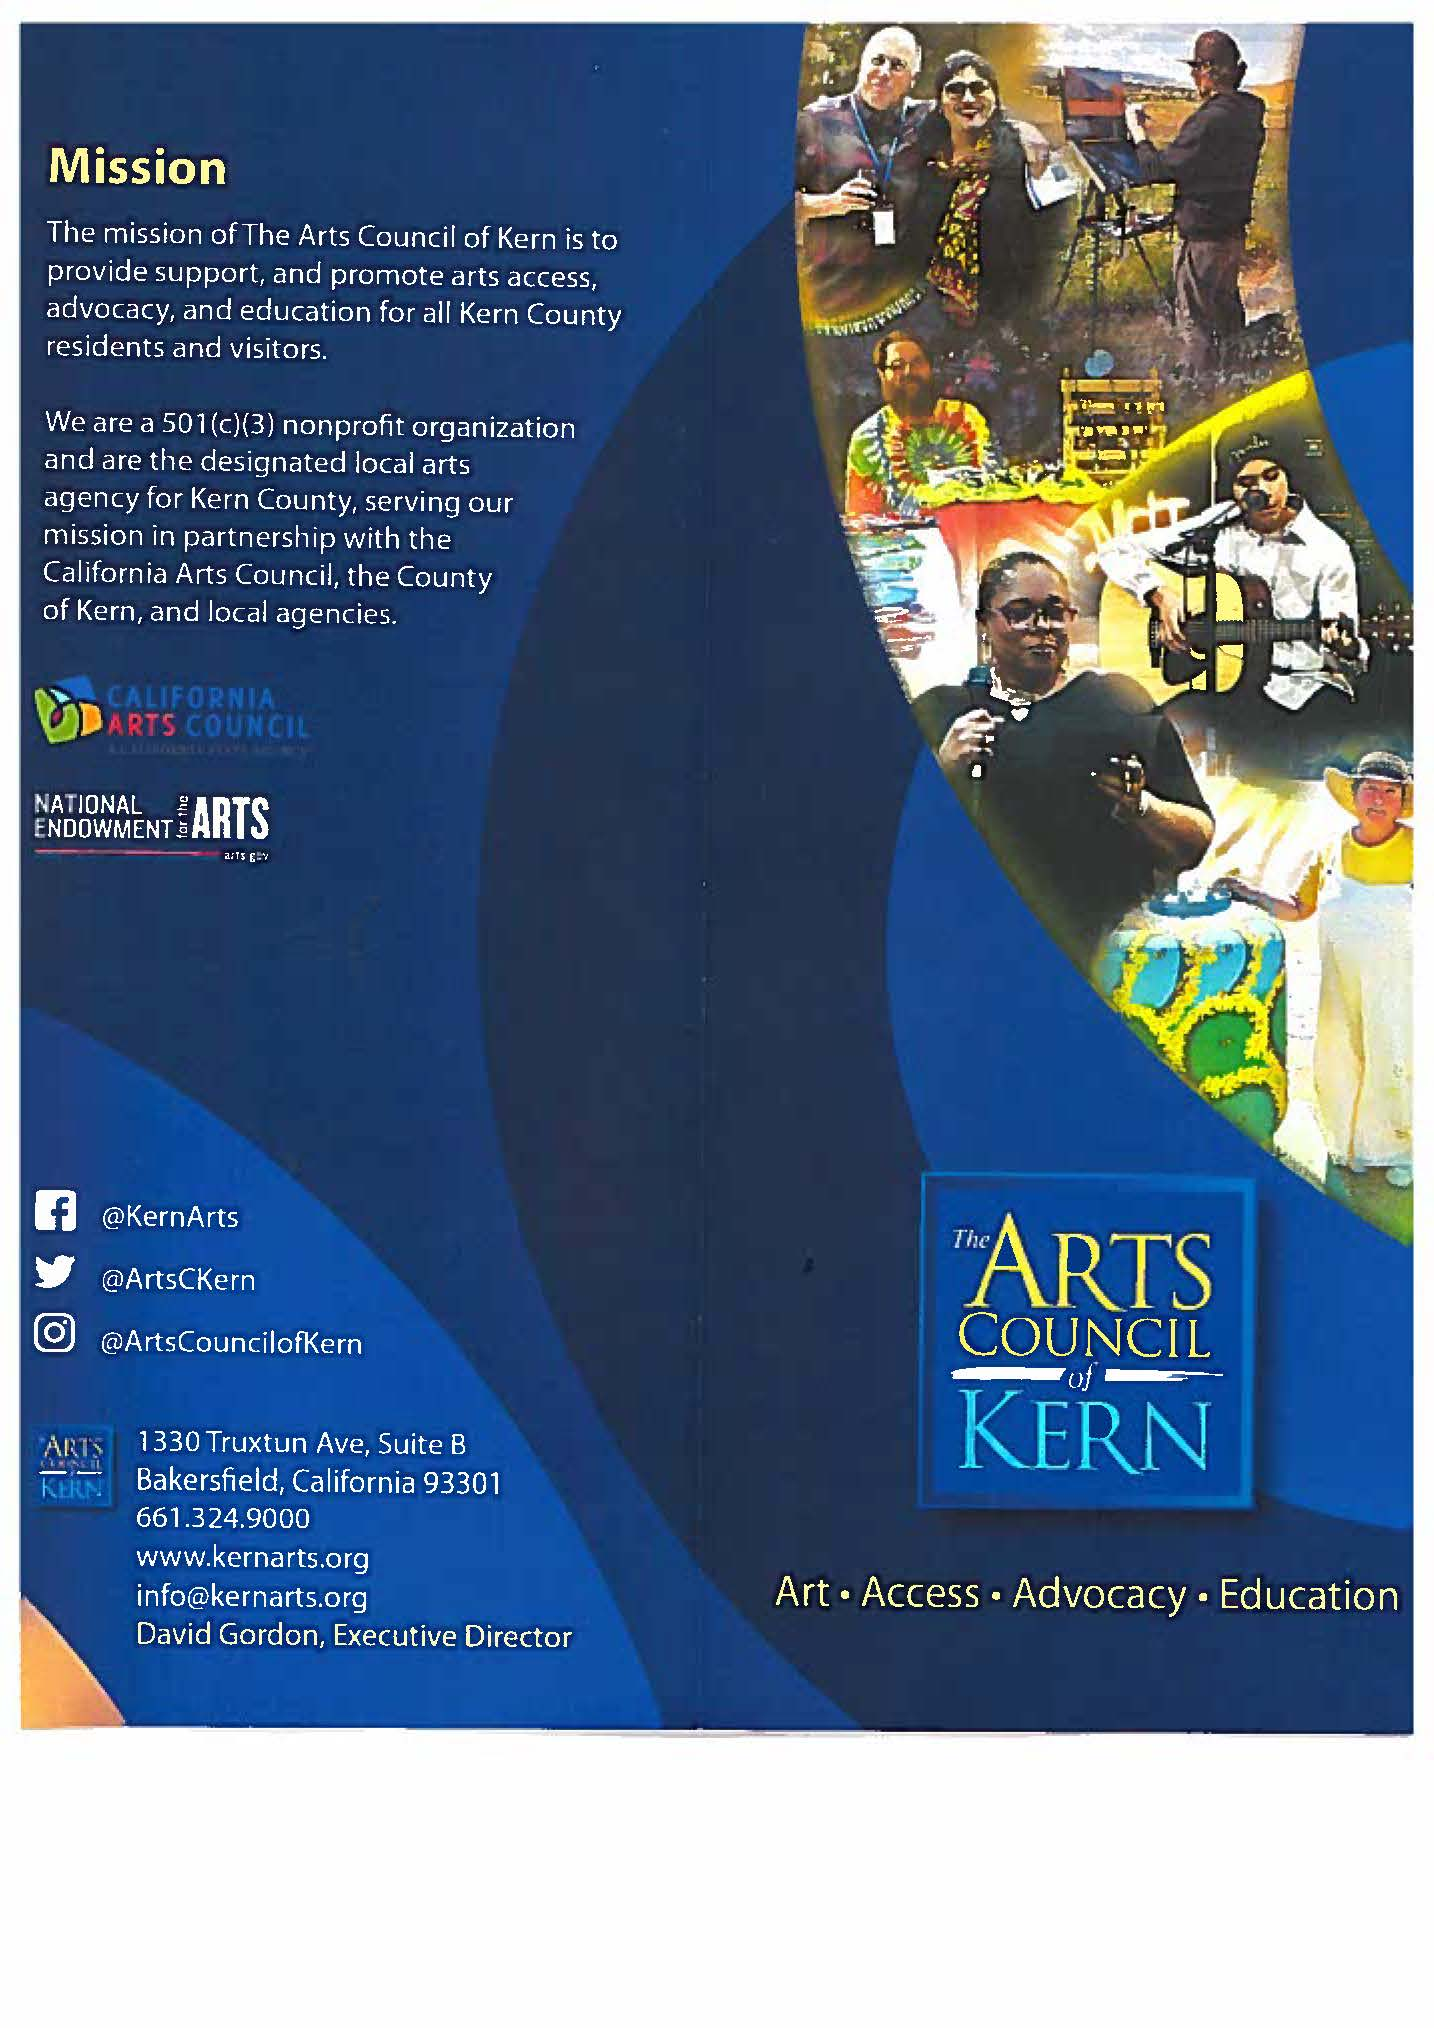 Arts of Council of Kern_Page_1